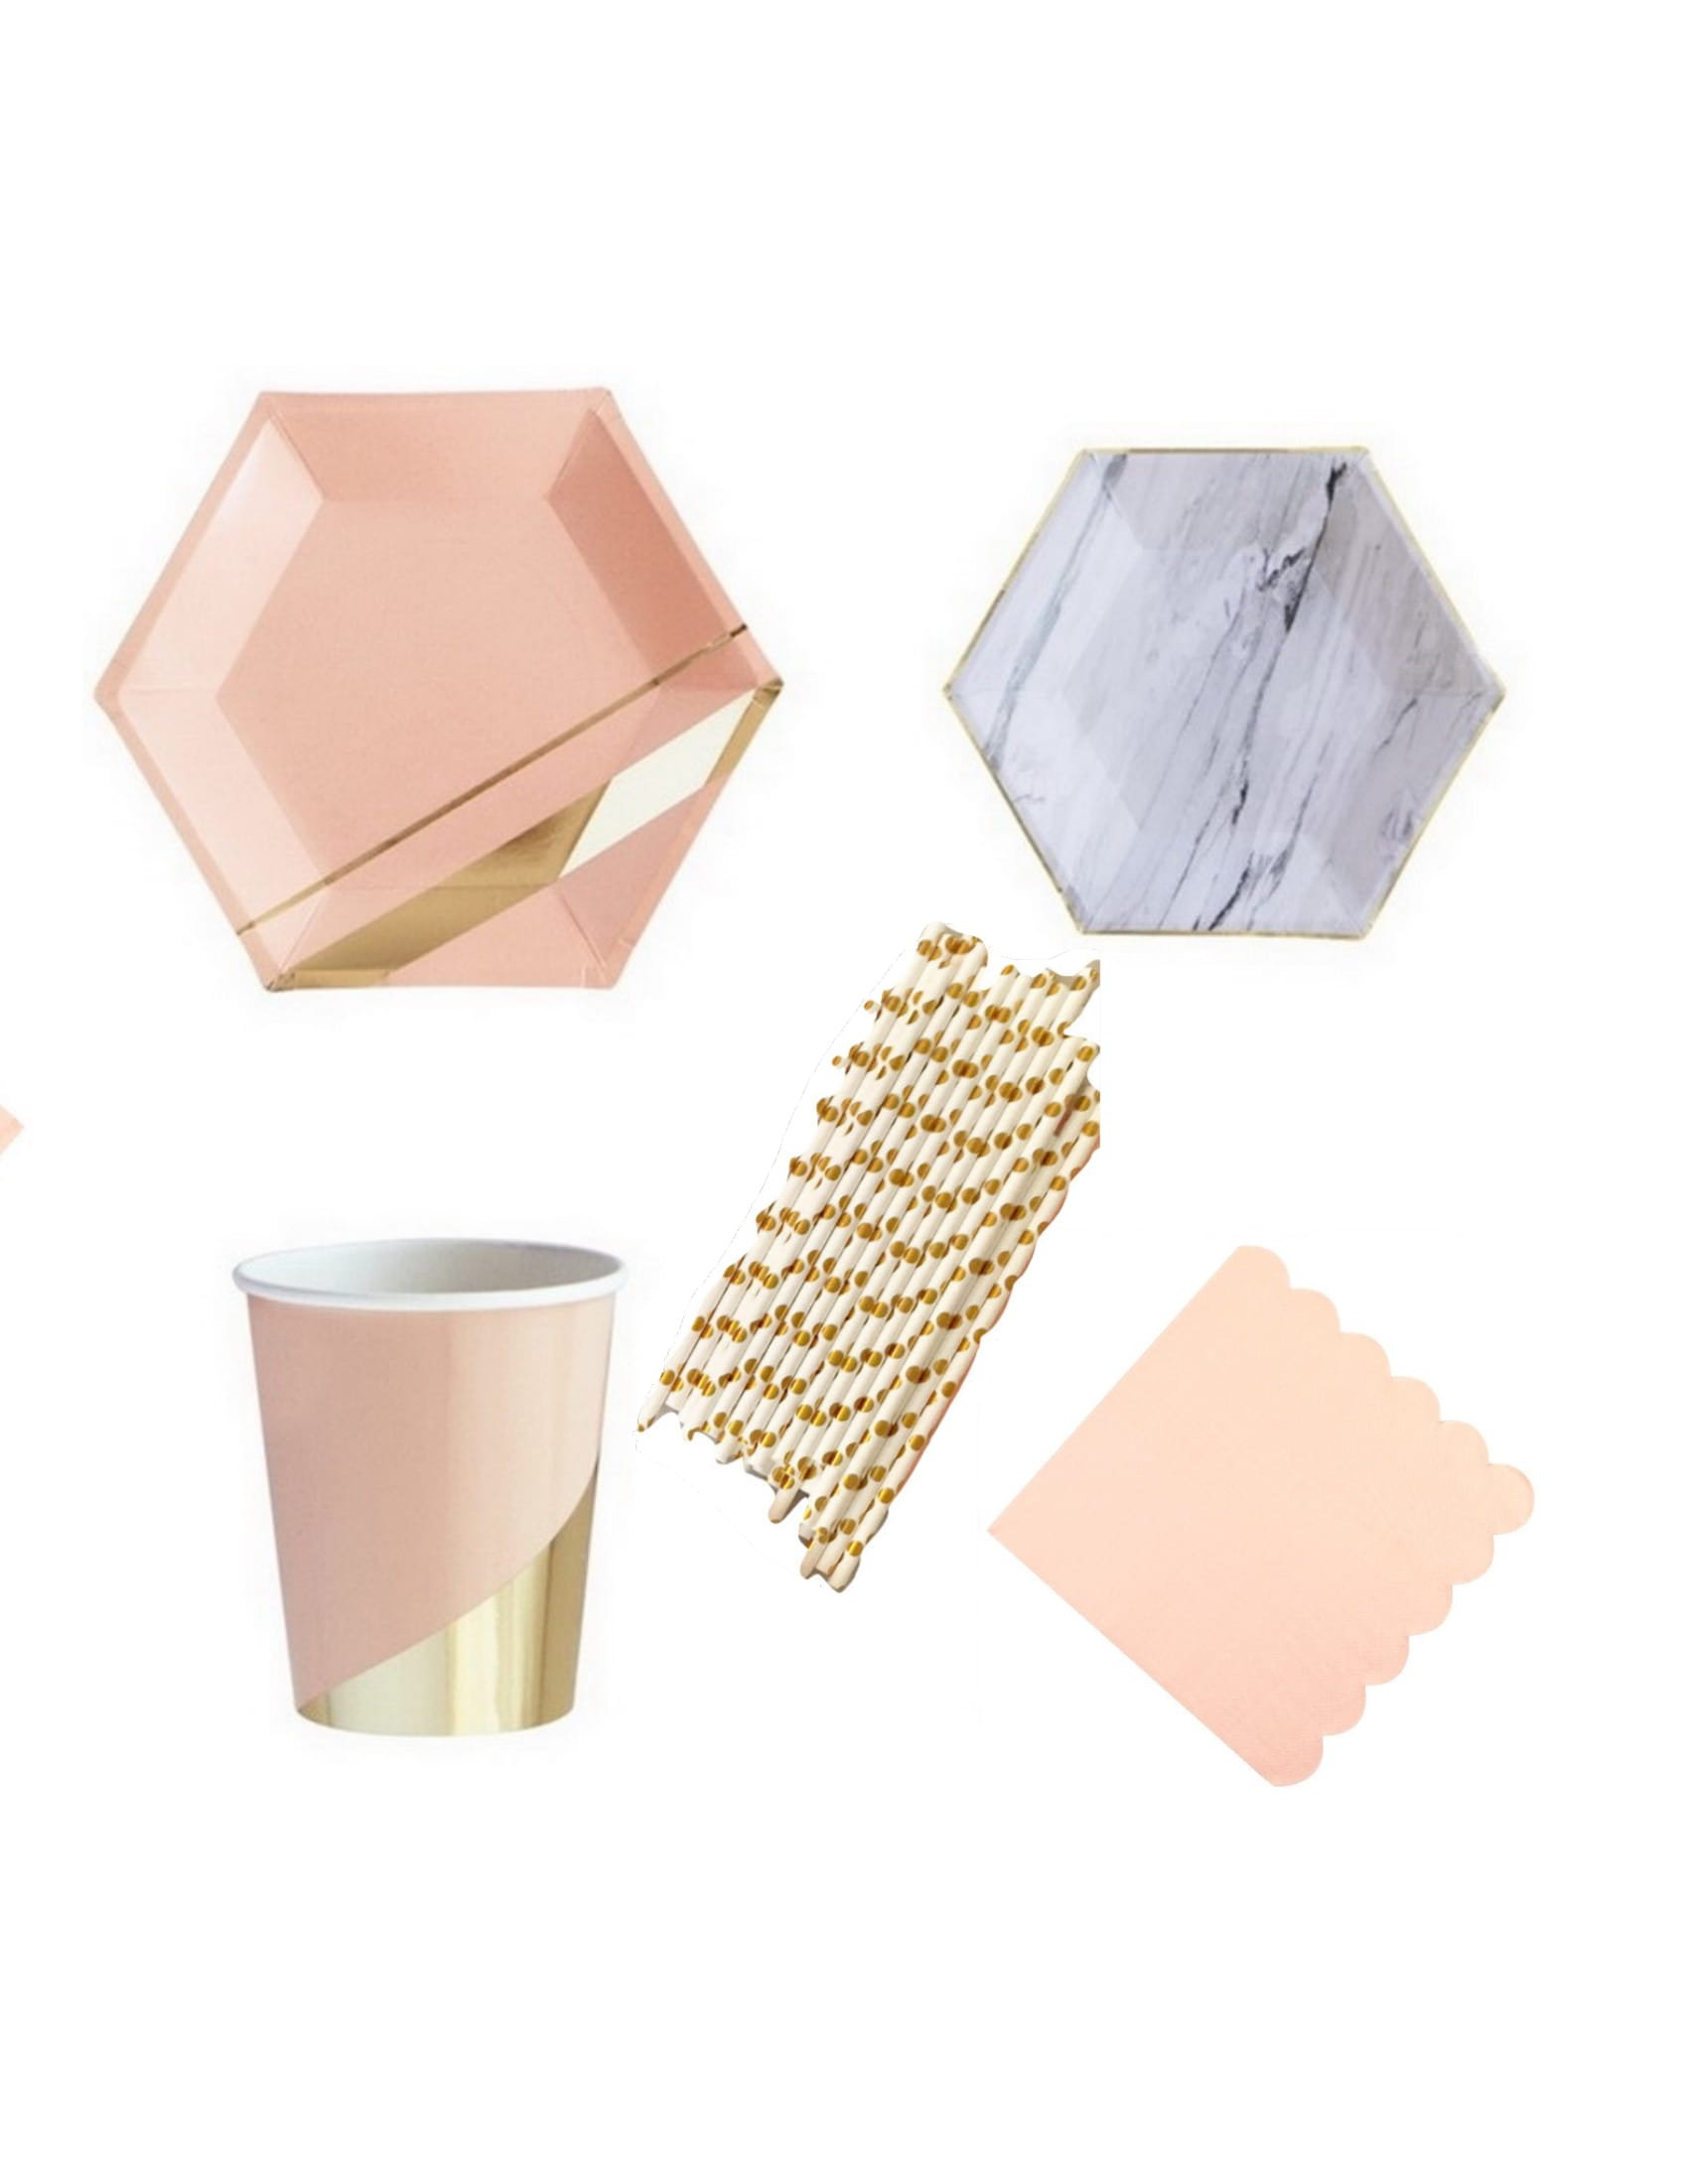 rose gold 69 pcs deluxe plates napkins cups birthday party supply wedding bridal shower tableware sets